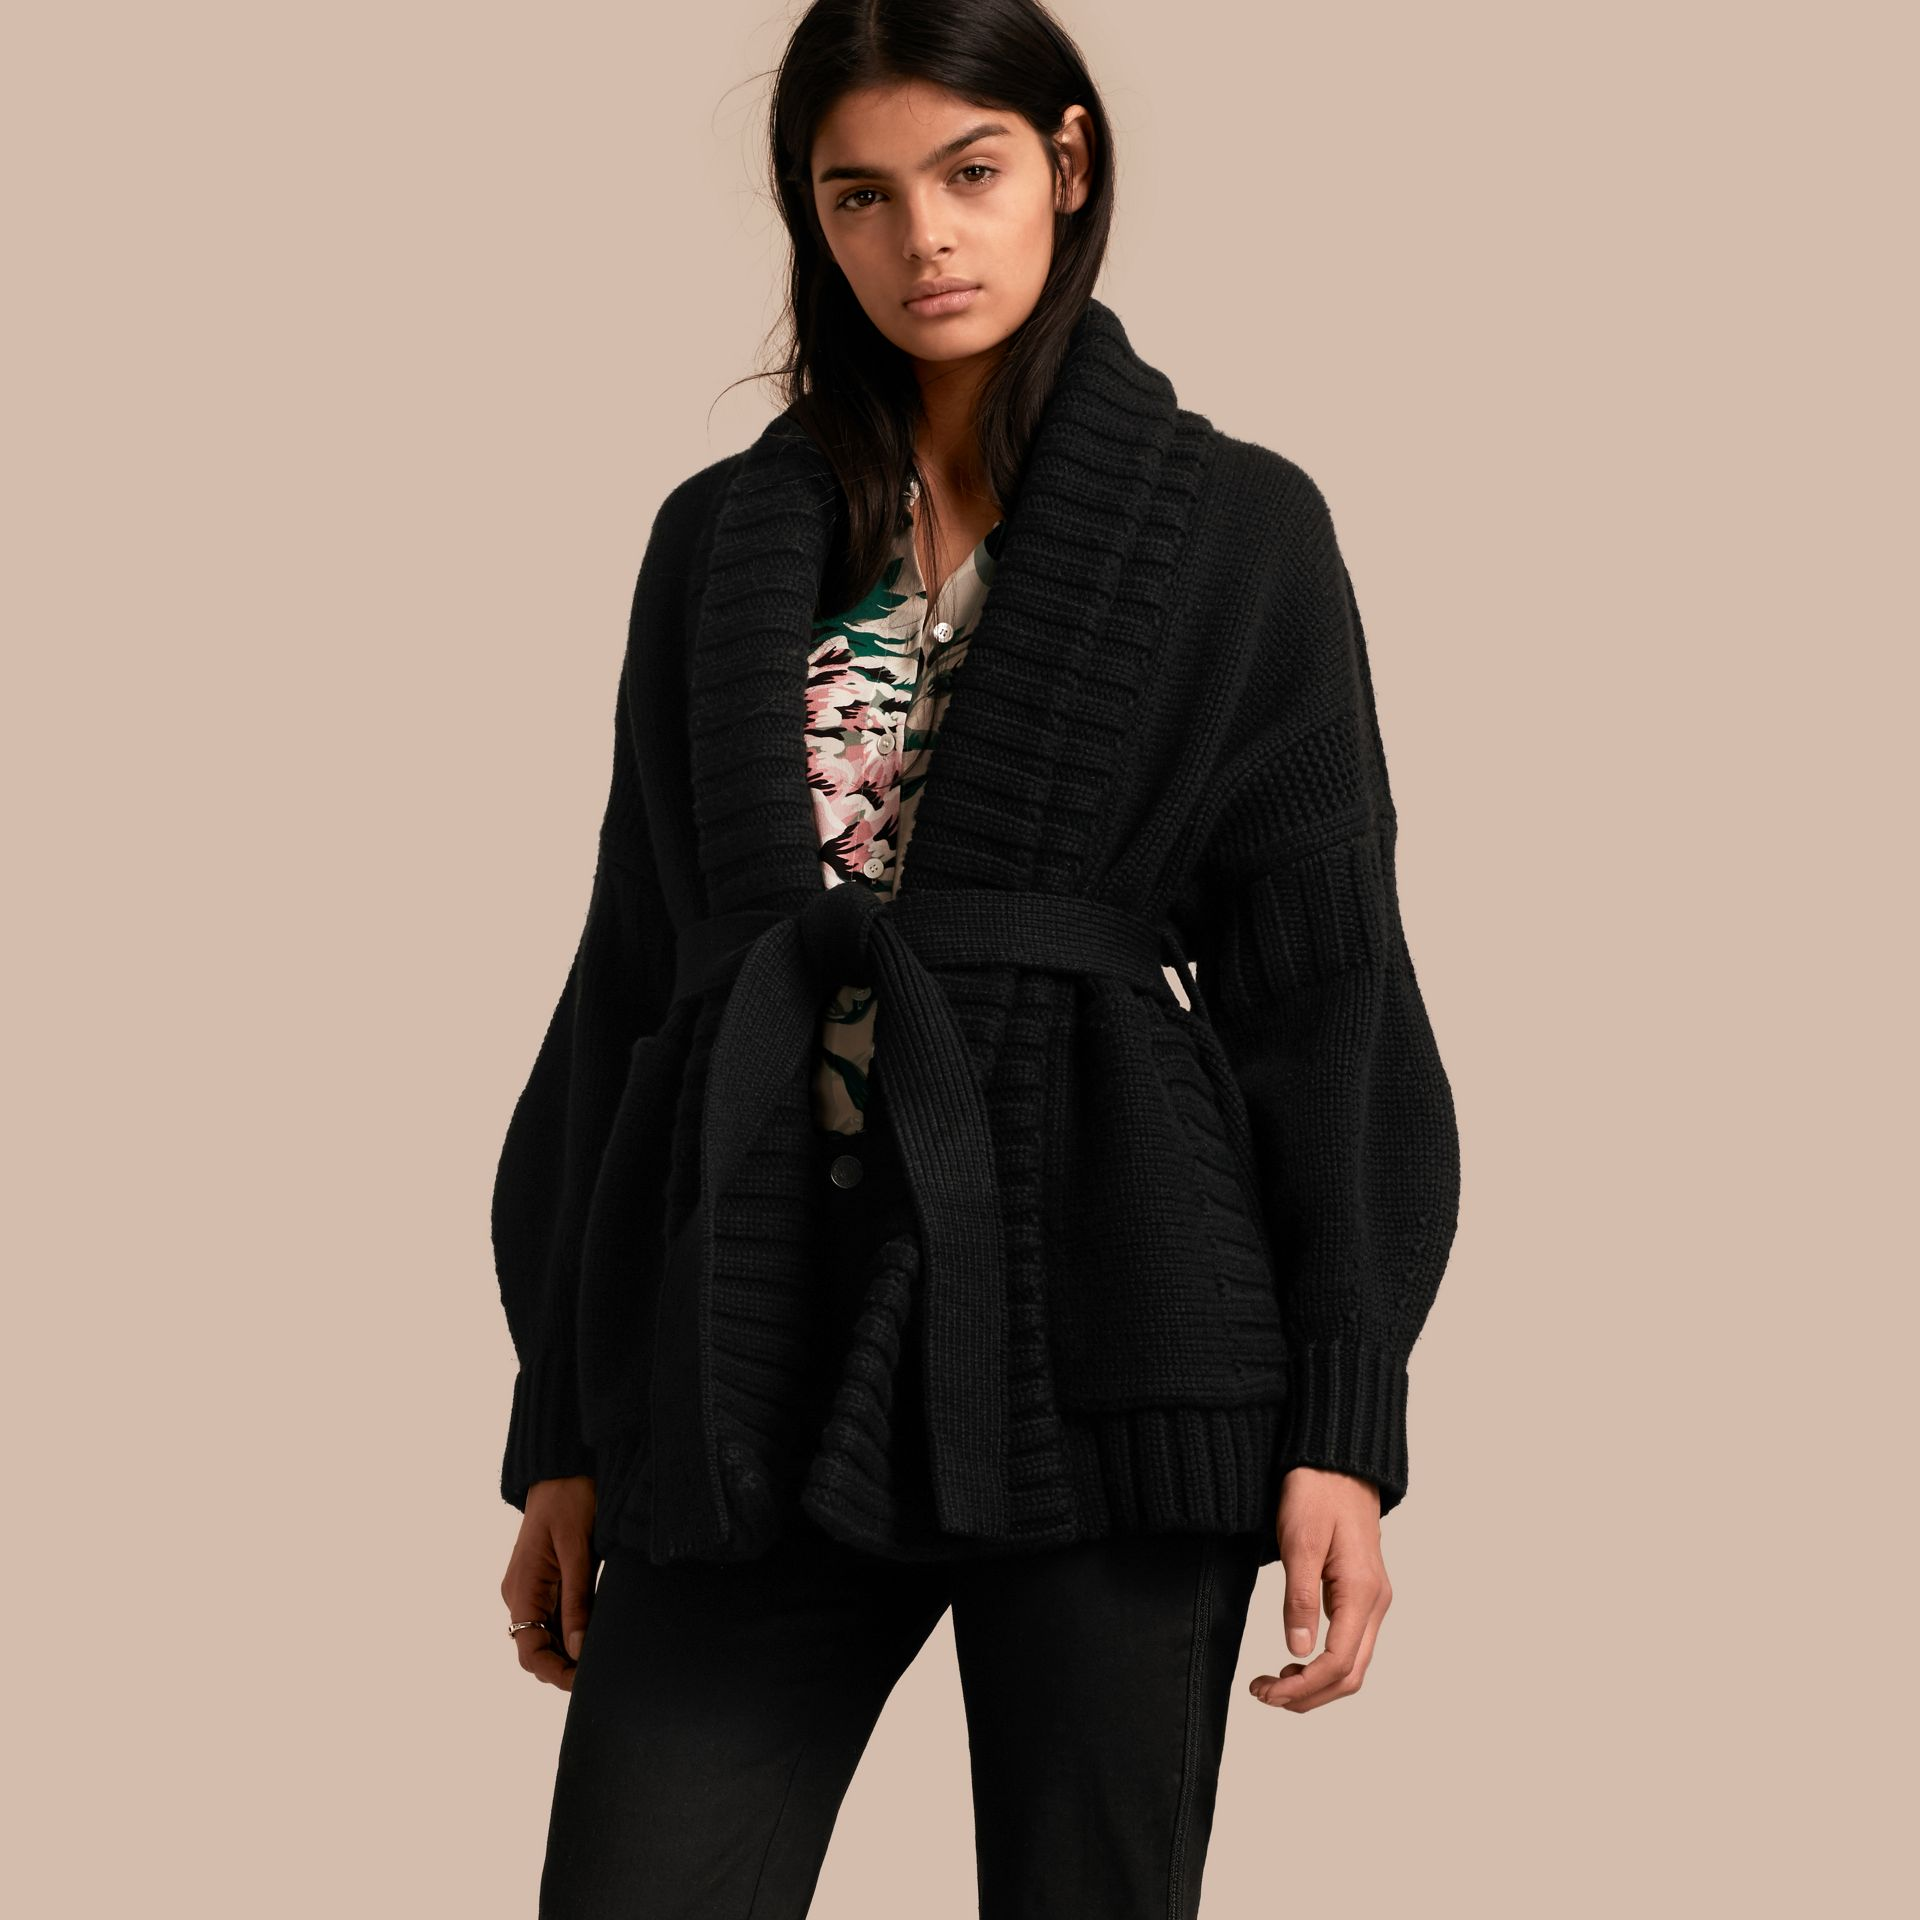 Black Knitted Wool Cashmere Belted Cardigan Jacket Black - gallery image 1